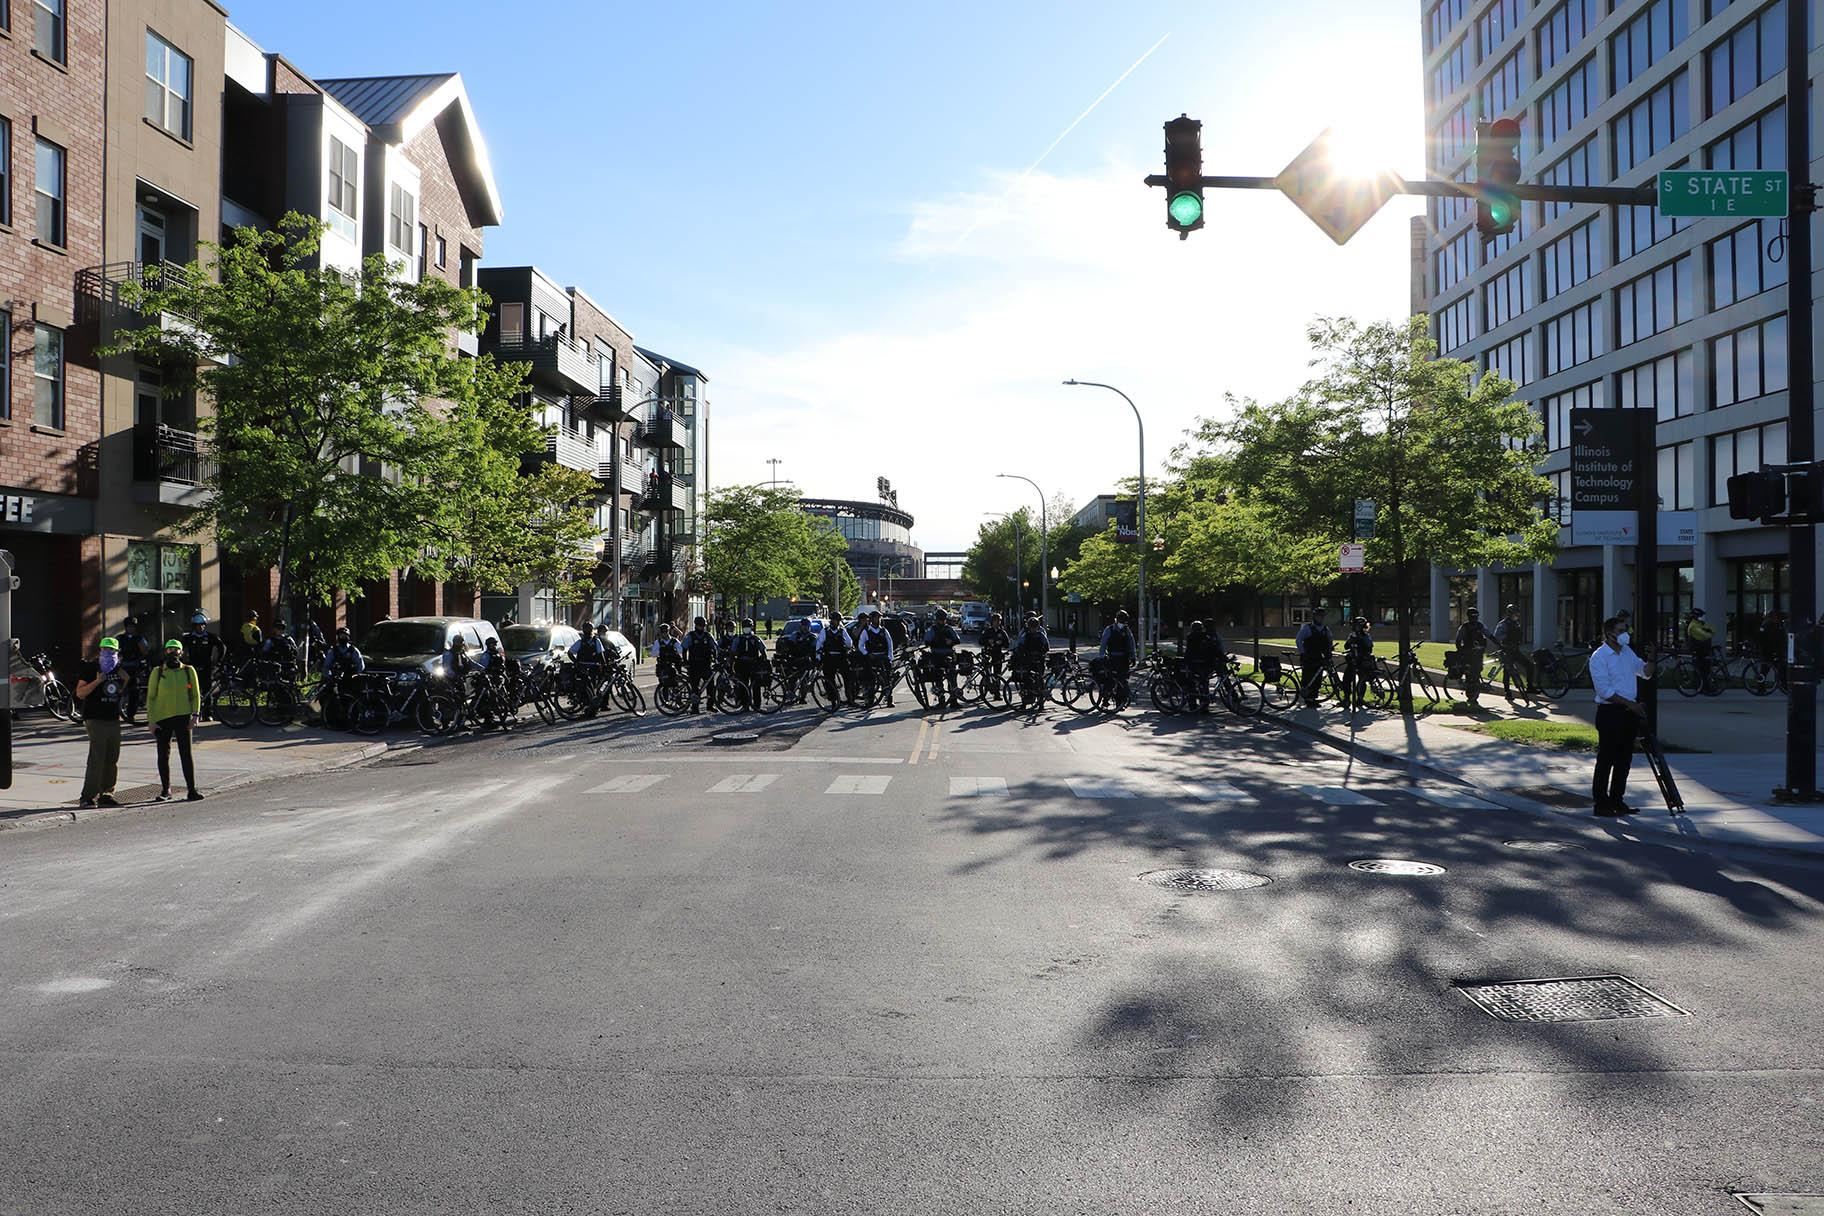 Police officers form a line to block the west side of State Street. (Evan Garcia / WTTW News)